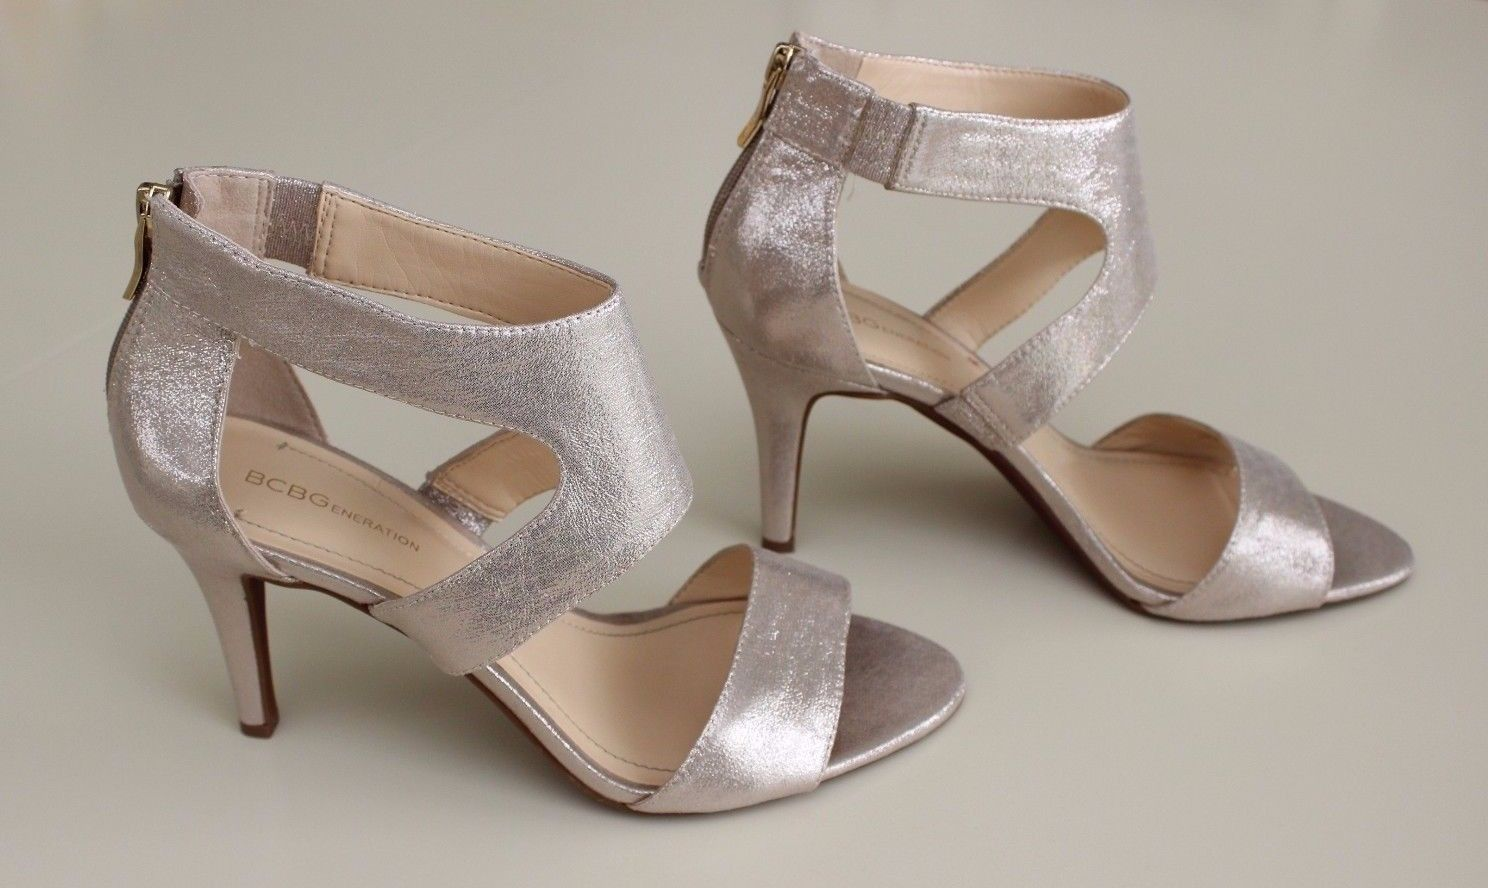 4f70022a0ed5 BCBGeneration MAVEL Heels Size 10 Gold and 21 similar items. S l1600